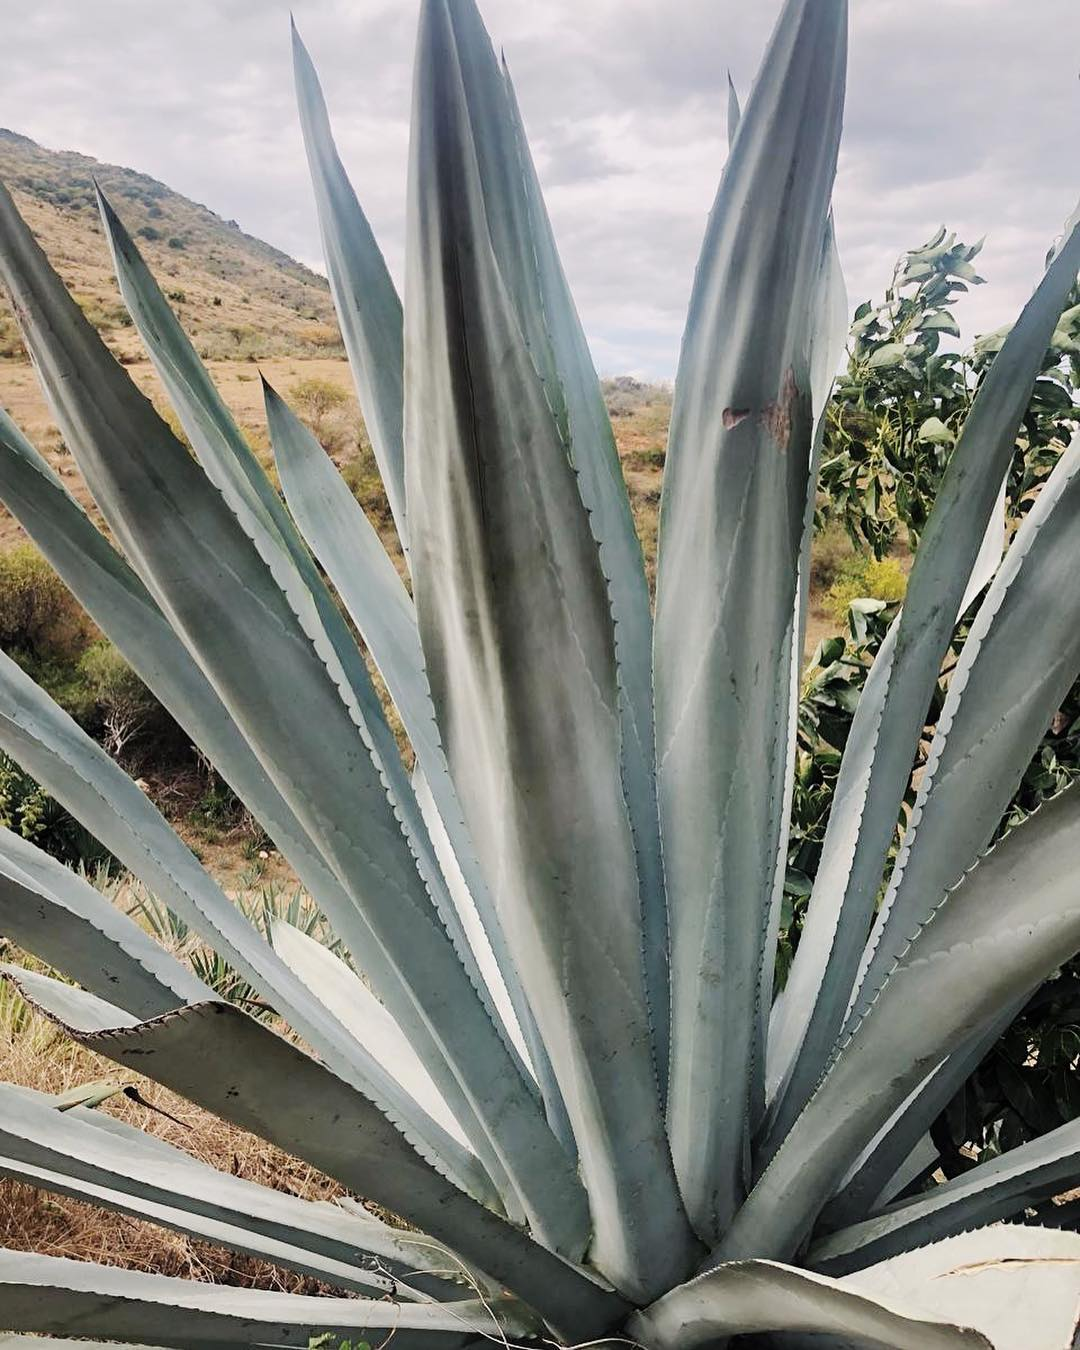 TOURISM + SOCIAL IMPACT - We create a pact of mutual development between agave-producing communities and a tourism collective to increase social and economic welfare.